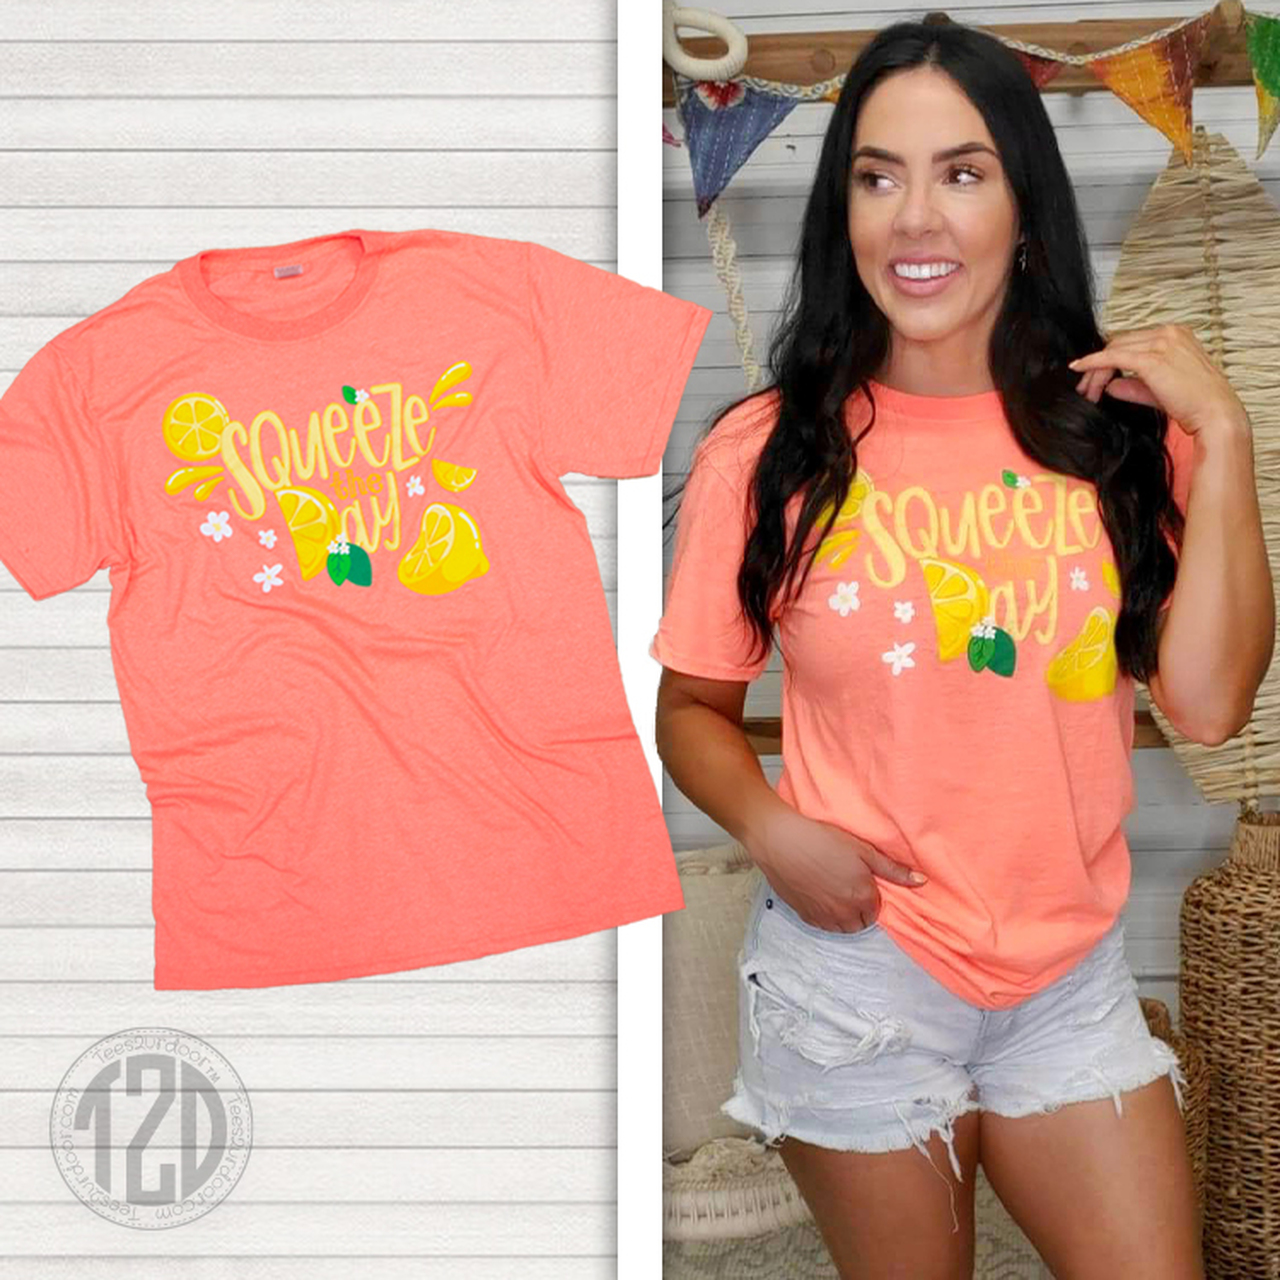 Squeeze the Day shirt